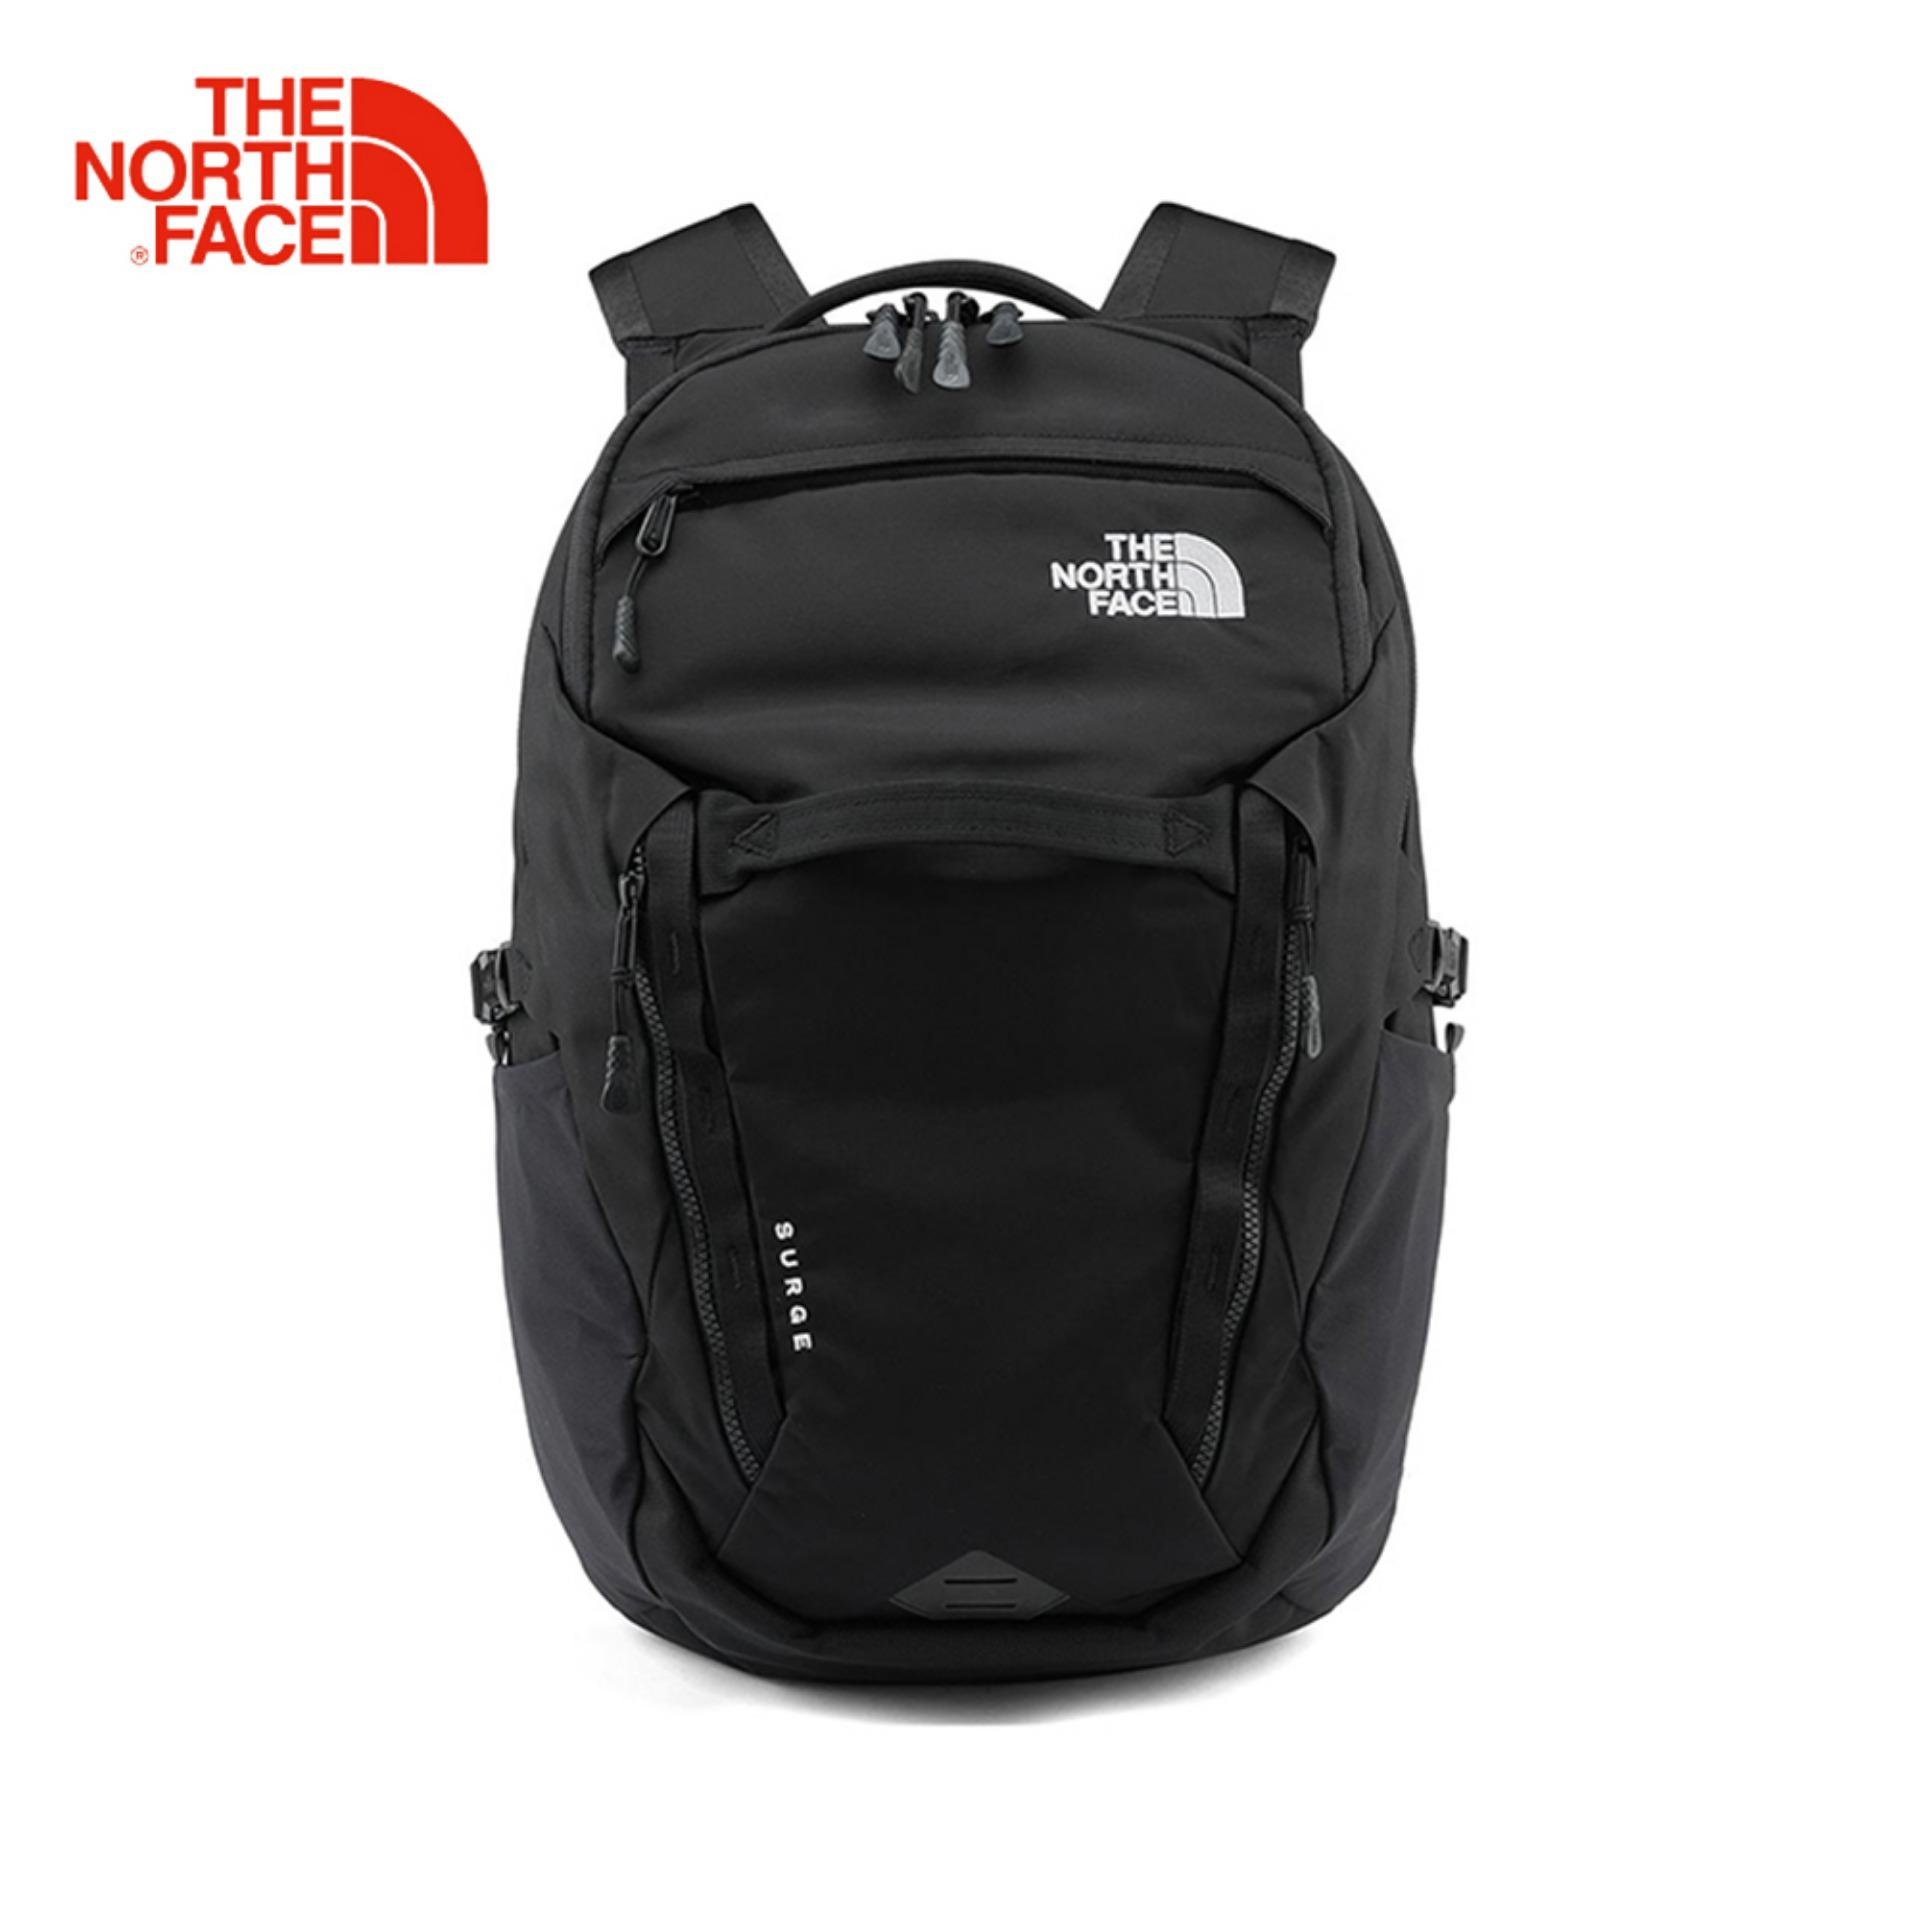 dc3fa3a91 The North Face Philippines: The North Face price list - Laptop ...